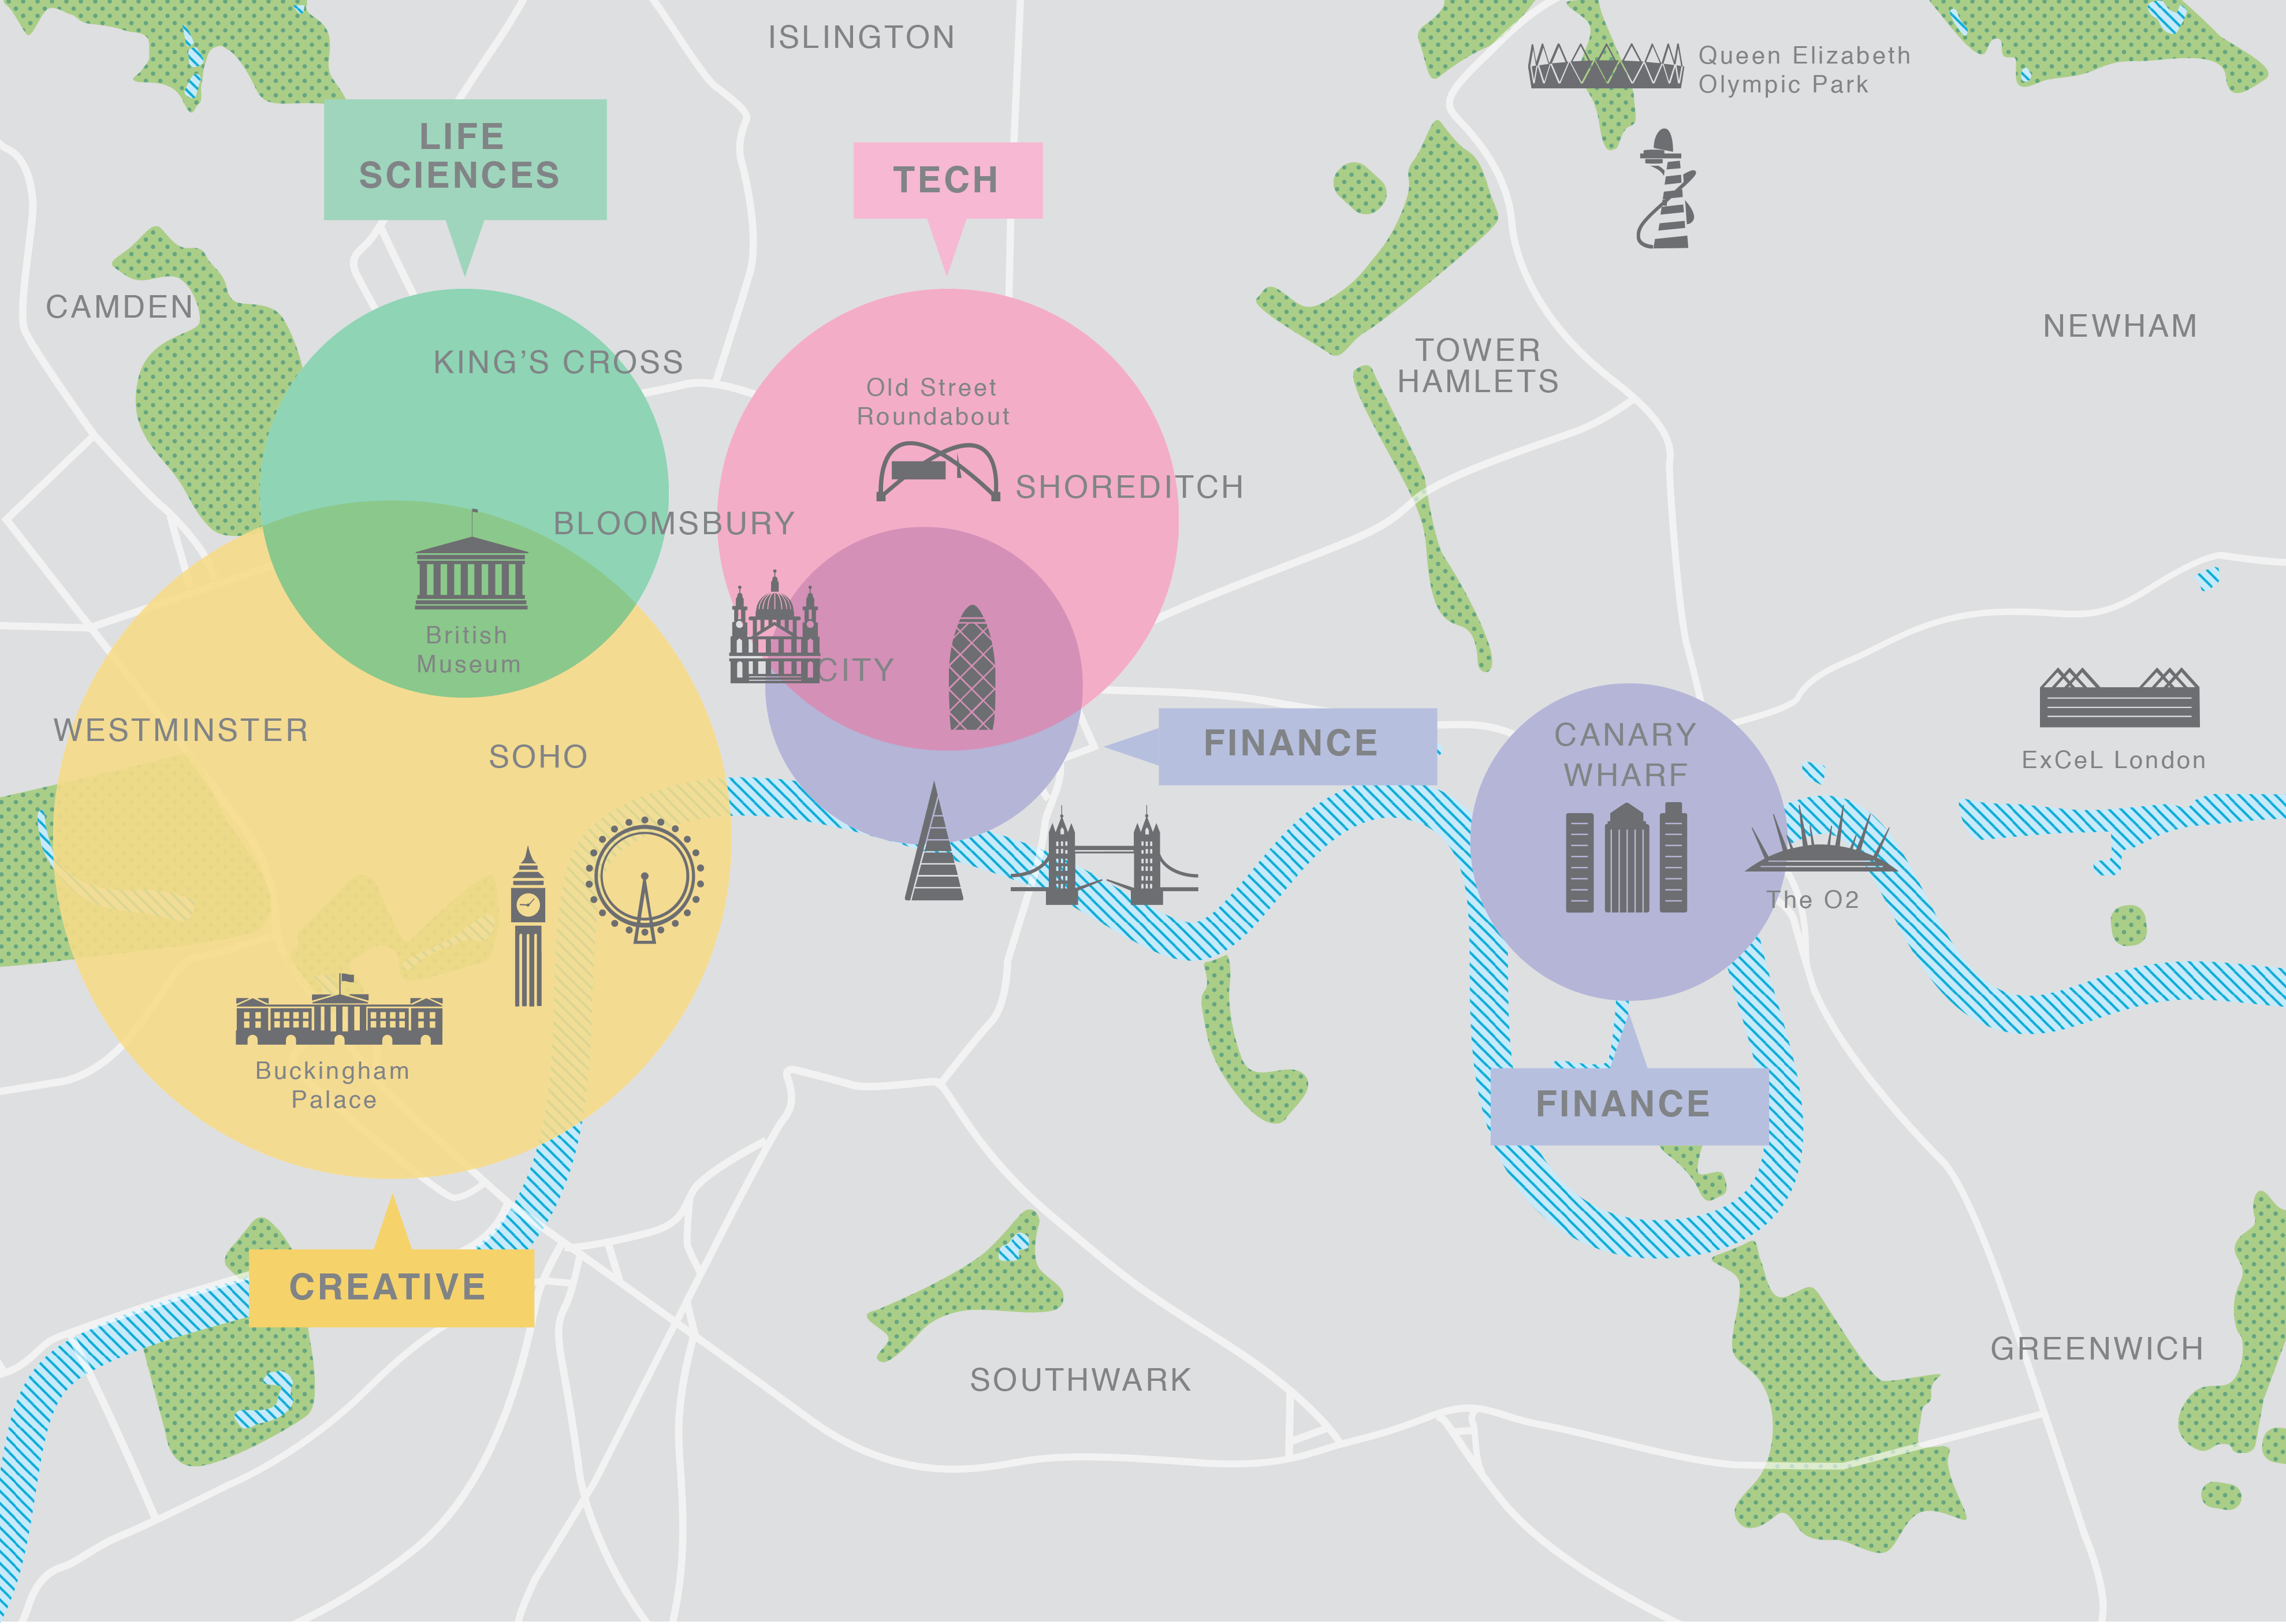 Map of London showing locations of the Technology, Finance, Creative, and Life Sciences sectors